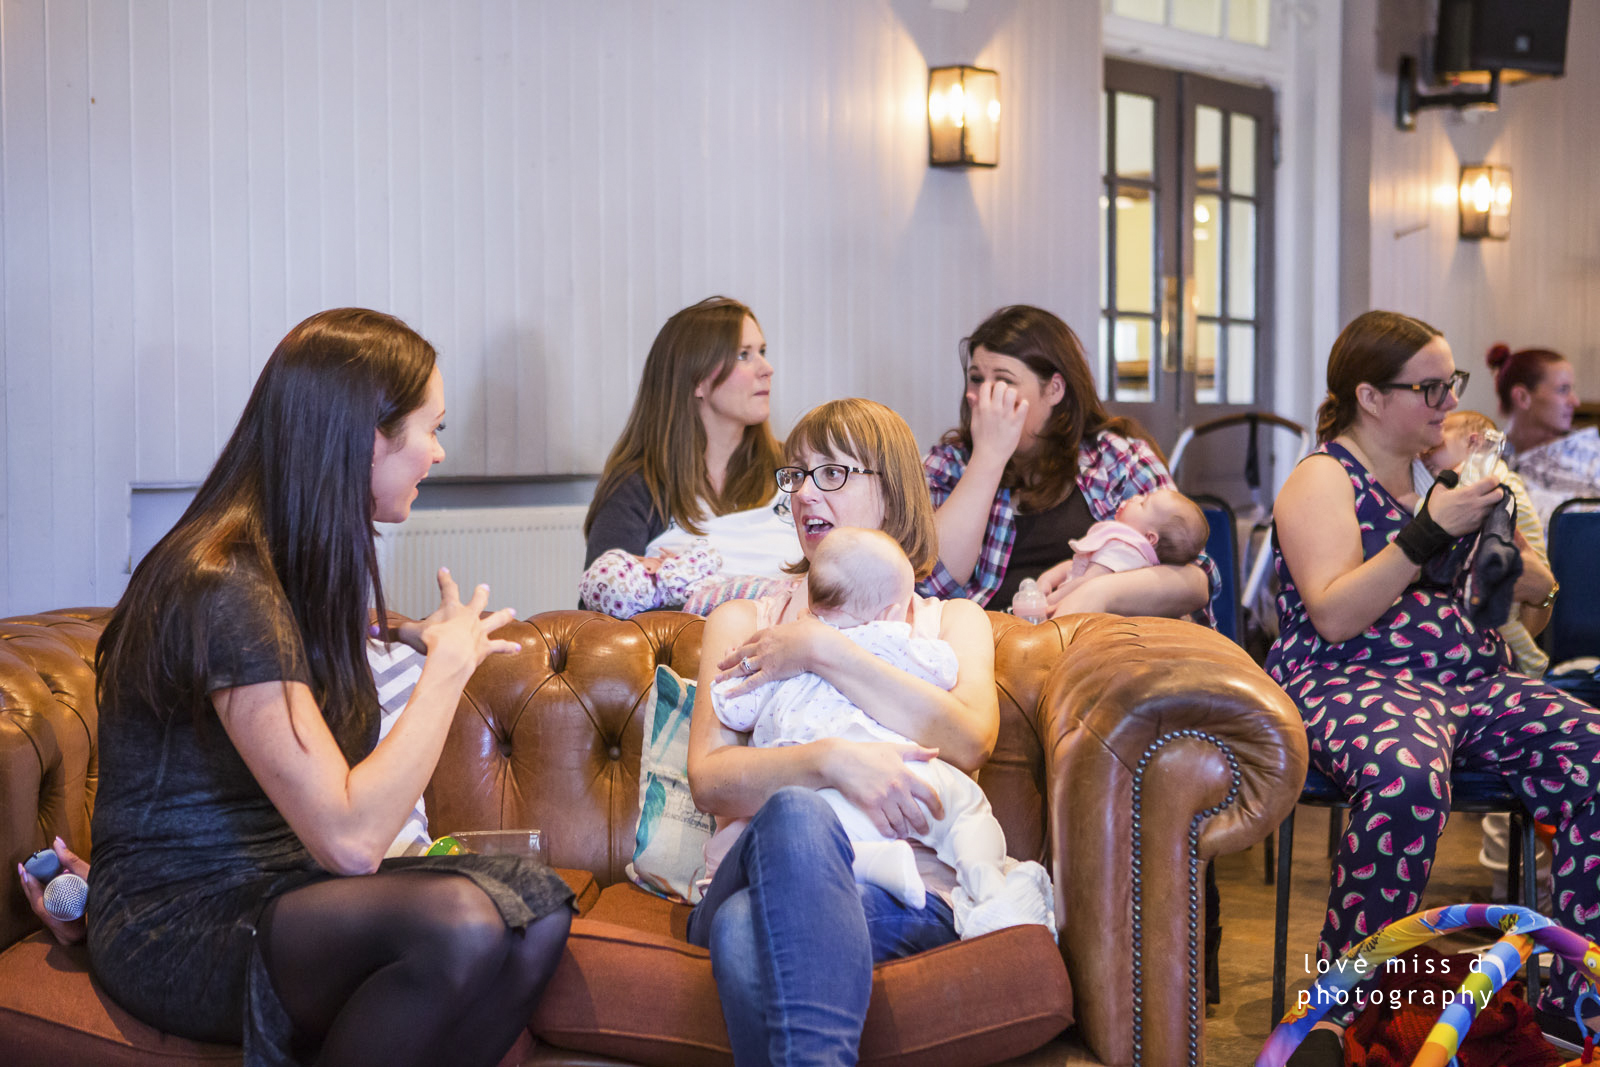 september 2018: the secret to loving motherhood - We heard from the amazing Jessica of Super Mum Society giving an insight into her journey as a mum so far and what she's learnt along the way in terms of how to be the mum YOU want to be! Jessica has set up Super Mum Society to empower mums to bring a bit more balance and calm into their lives. 'Winging it' can be stressful at times, and we heard useful tips to work through the many challenges we face as new mums.